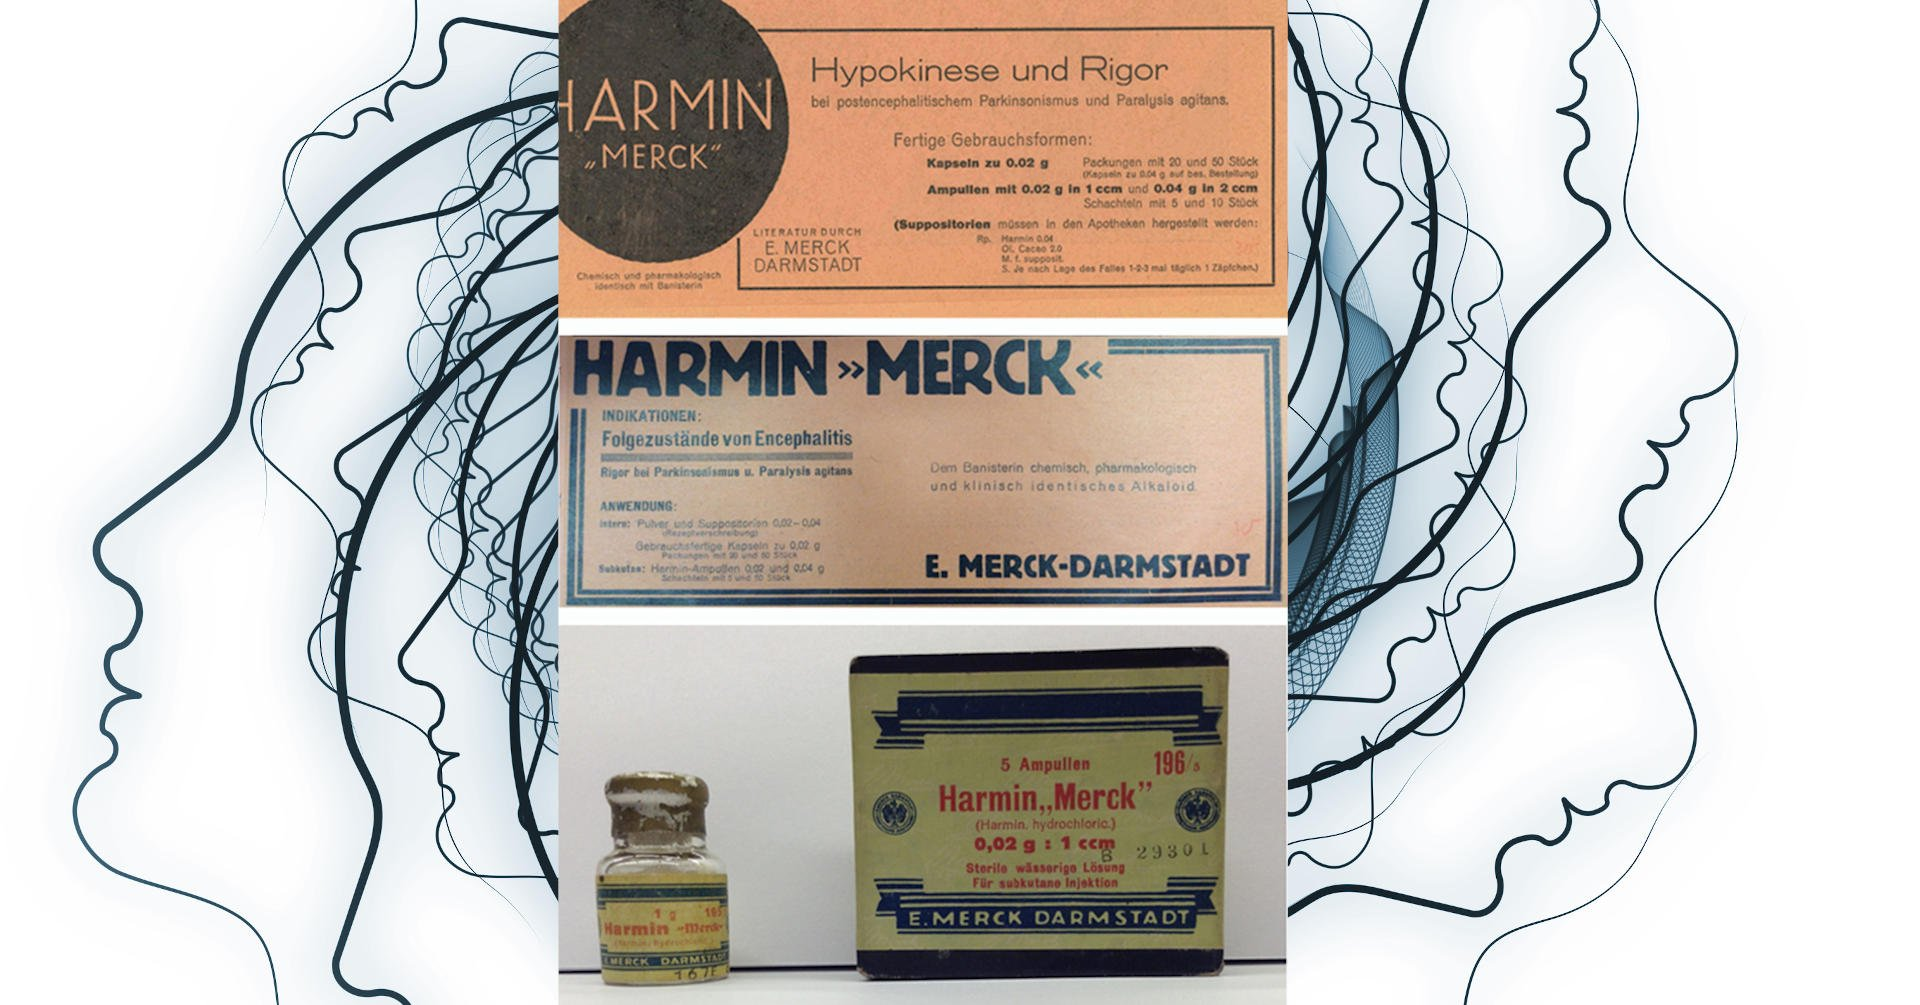 1928-1931 – Clinical Trials with Harmine Conducted on Parkinson's Disease